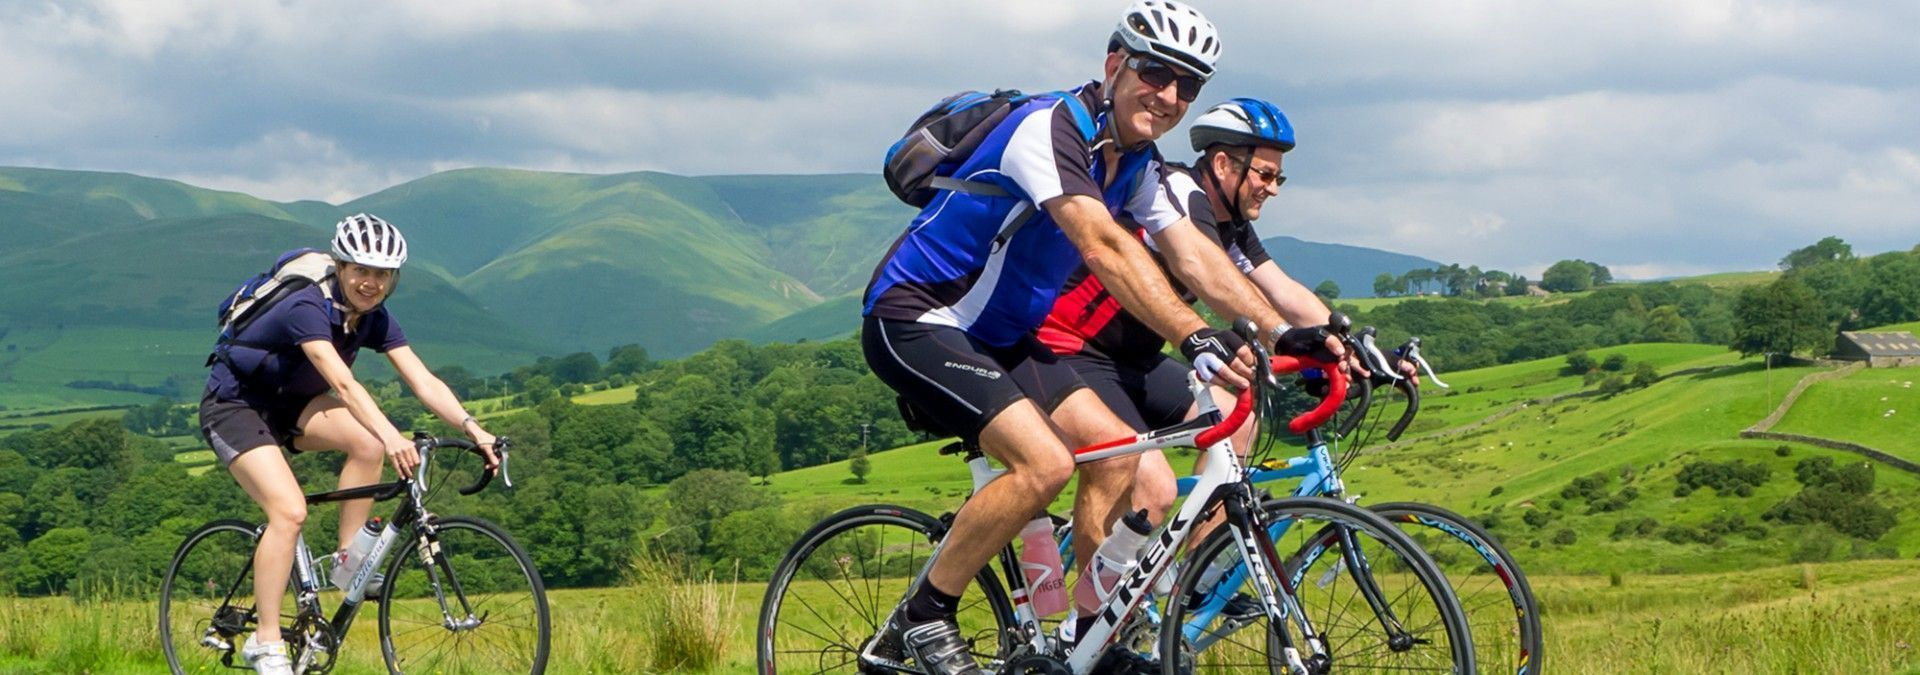 Cycling_Lake_District_Triathlon_challenge.jpg